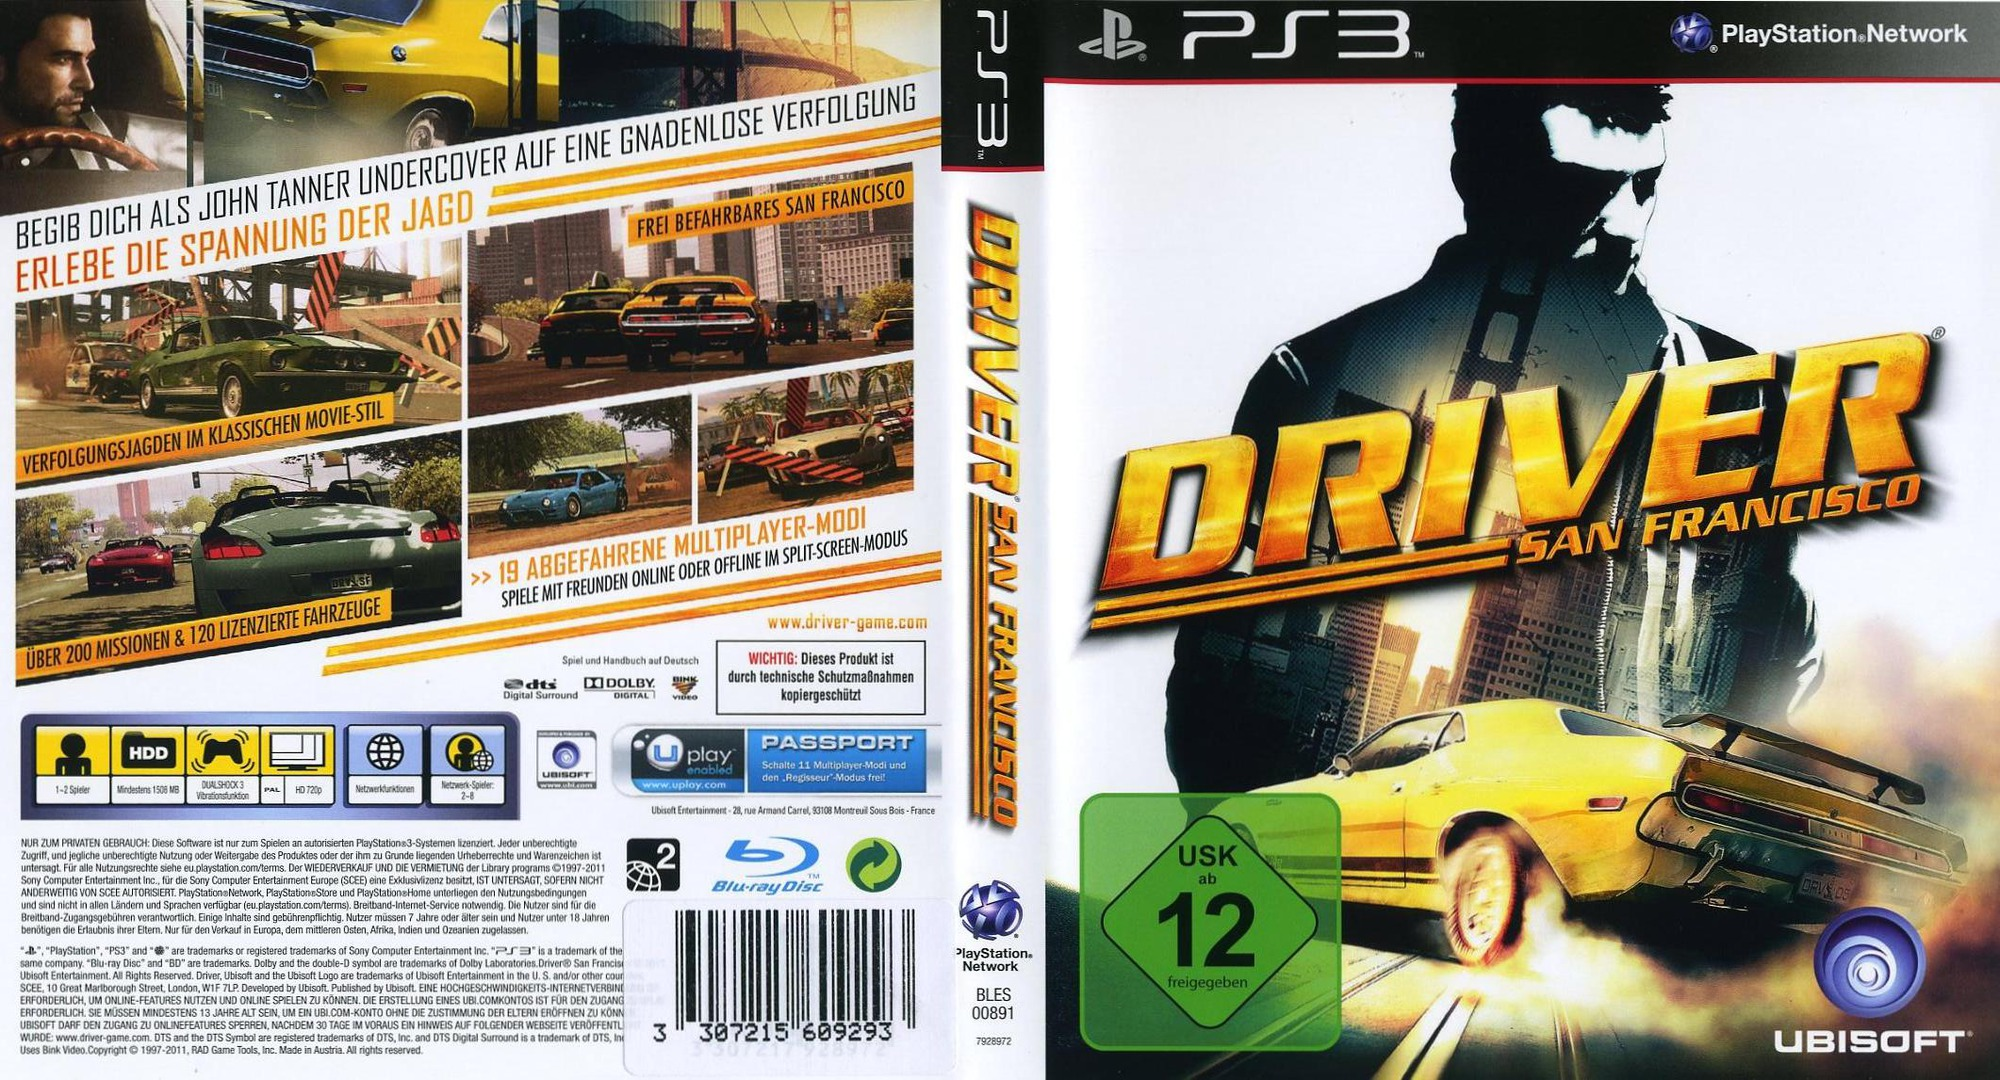 Save for Driver San Francisco | Saves For Games